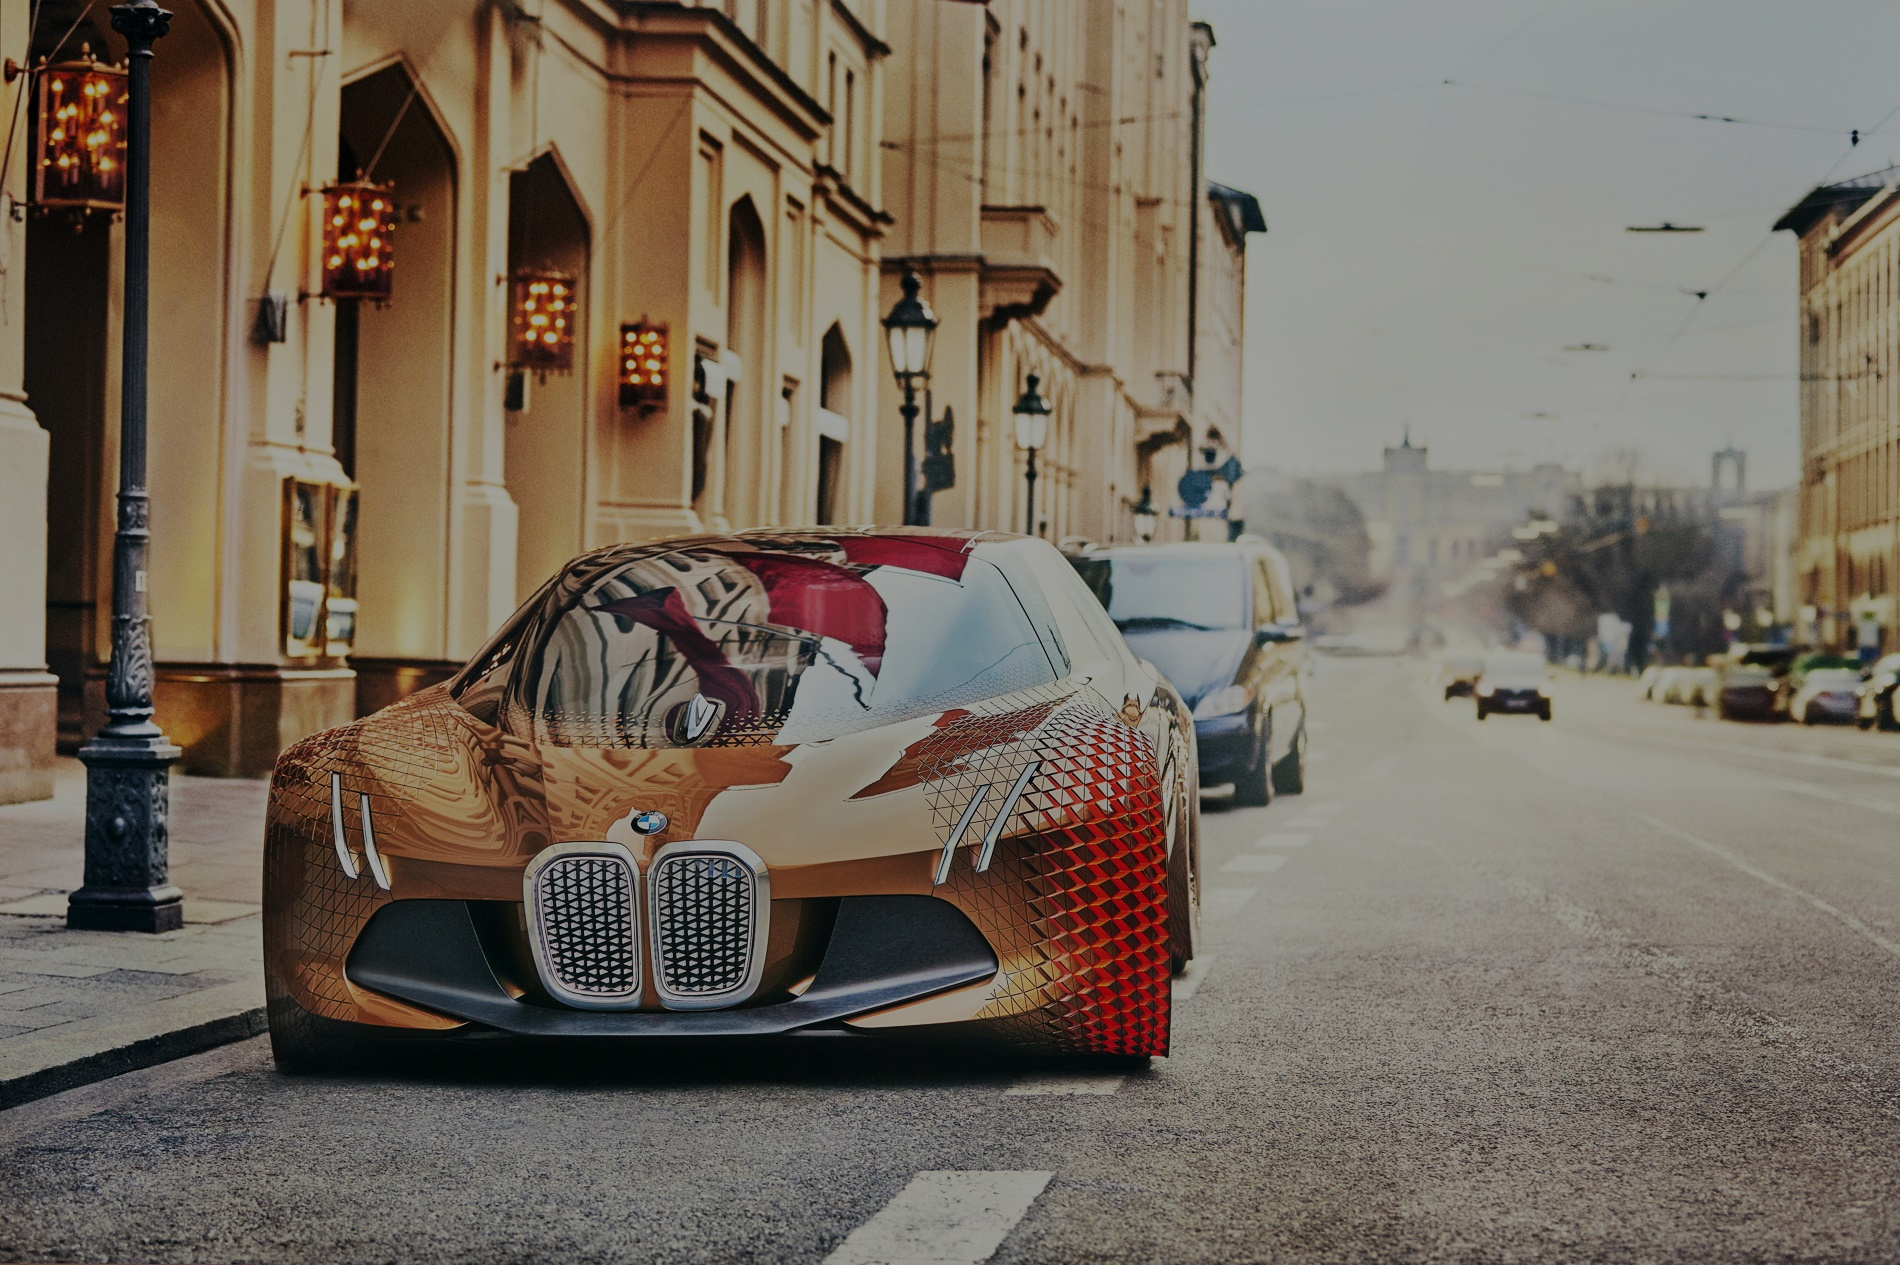 BMW-Vision-Next-100-images-127-1